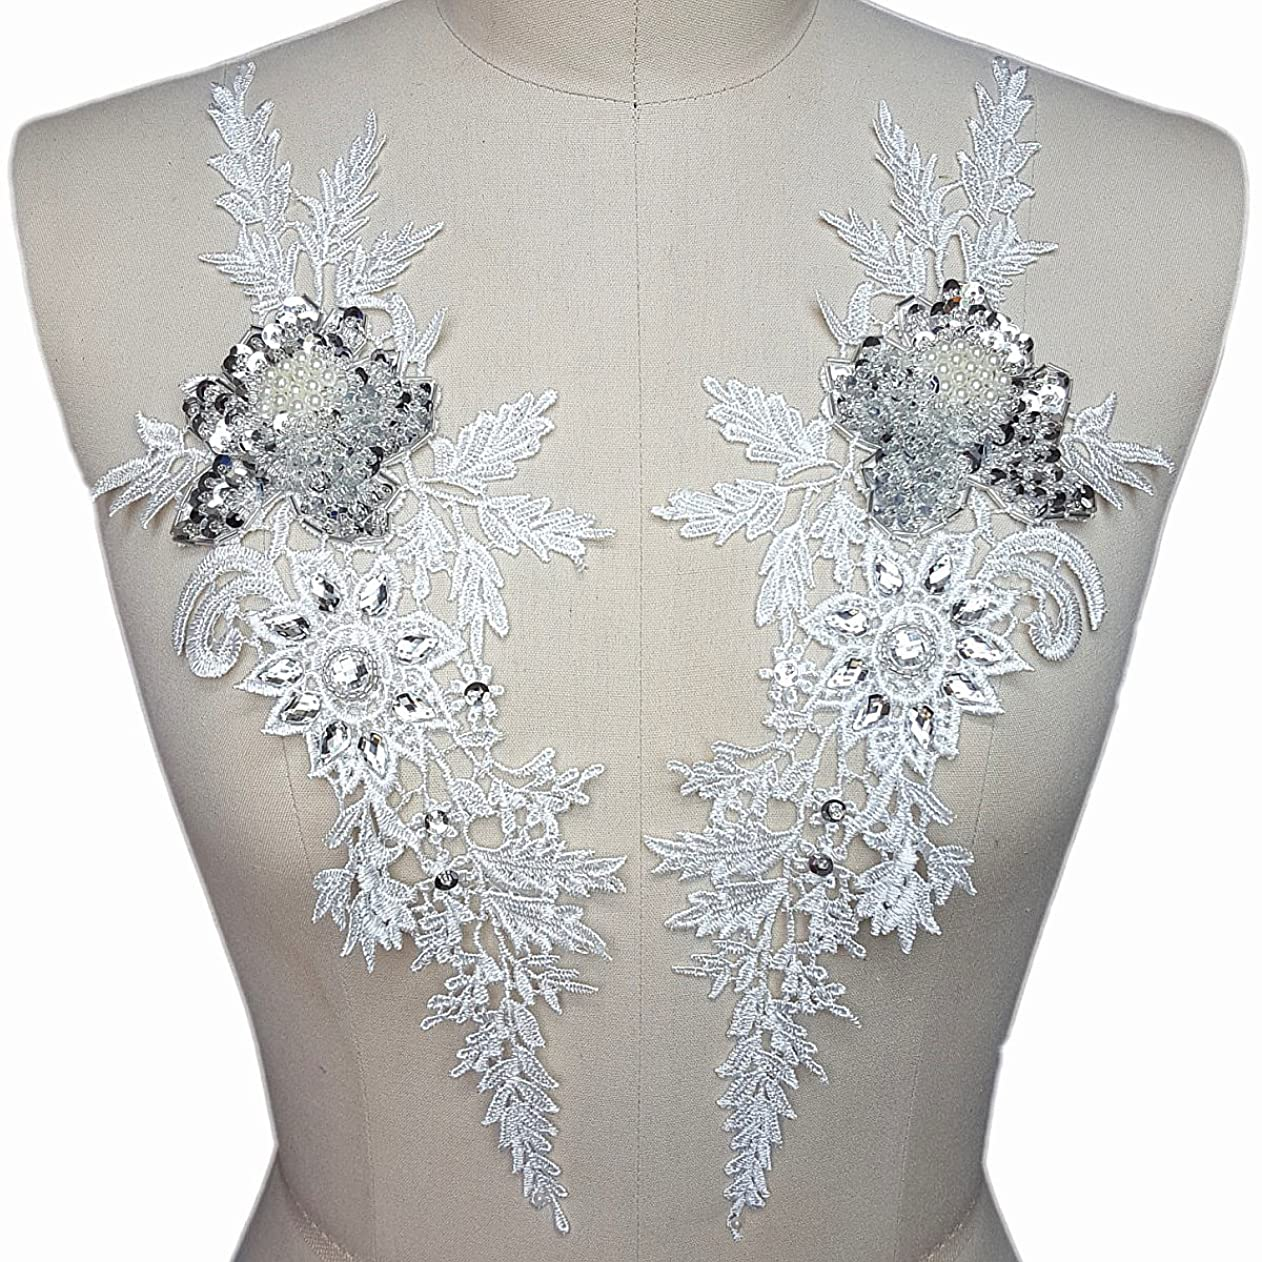 Lace White one Pair Sequins Rhinestones Embroidered Sew on Appliques, Patch for Wedding Dresses DIY Bridal Veil hknjptkkdwg47622